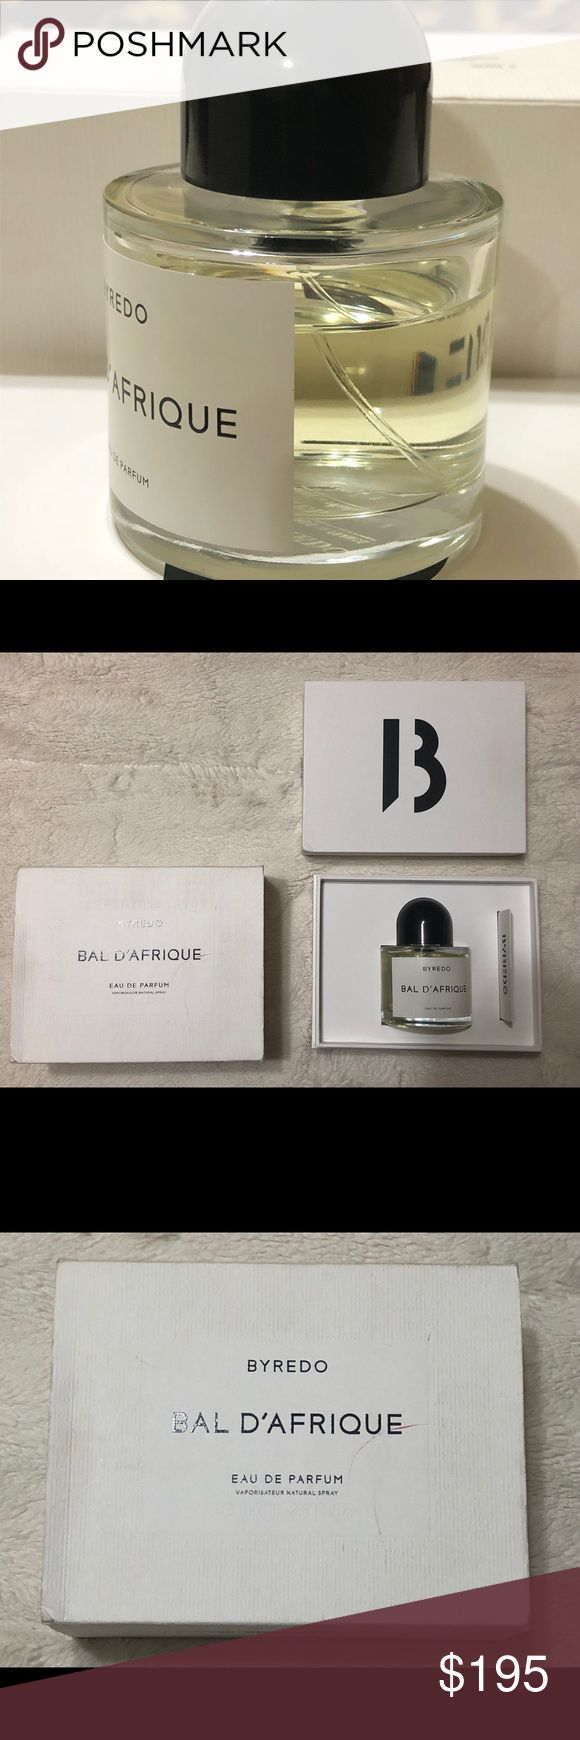 Byredo Bal D'Afrique Eau De Parfum 100% Authentic Byredo Bal D'Afrique 100ML Eau De Parfum. The bottle is about 85% full. Since I've sprayed this perfume several times, I'm selling it for cheaper than what you'd pay in store. With tax, I paid about $250. Reasonable offers will be considered. Byredo Other